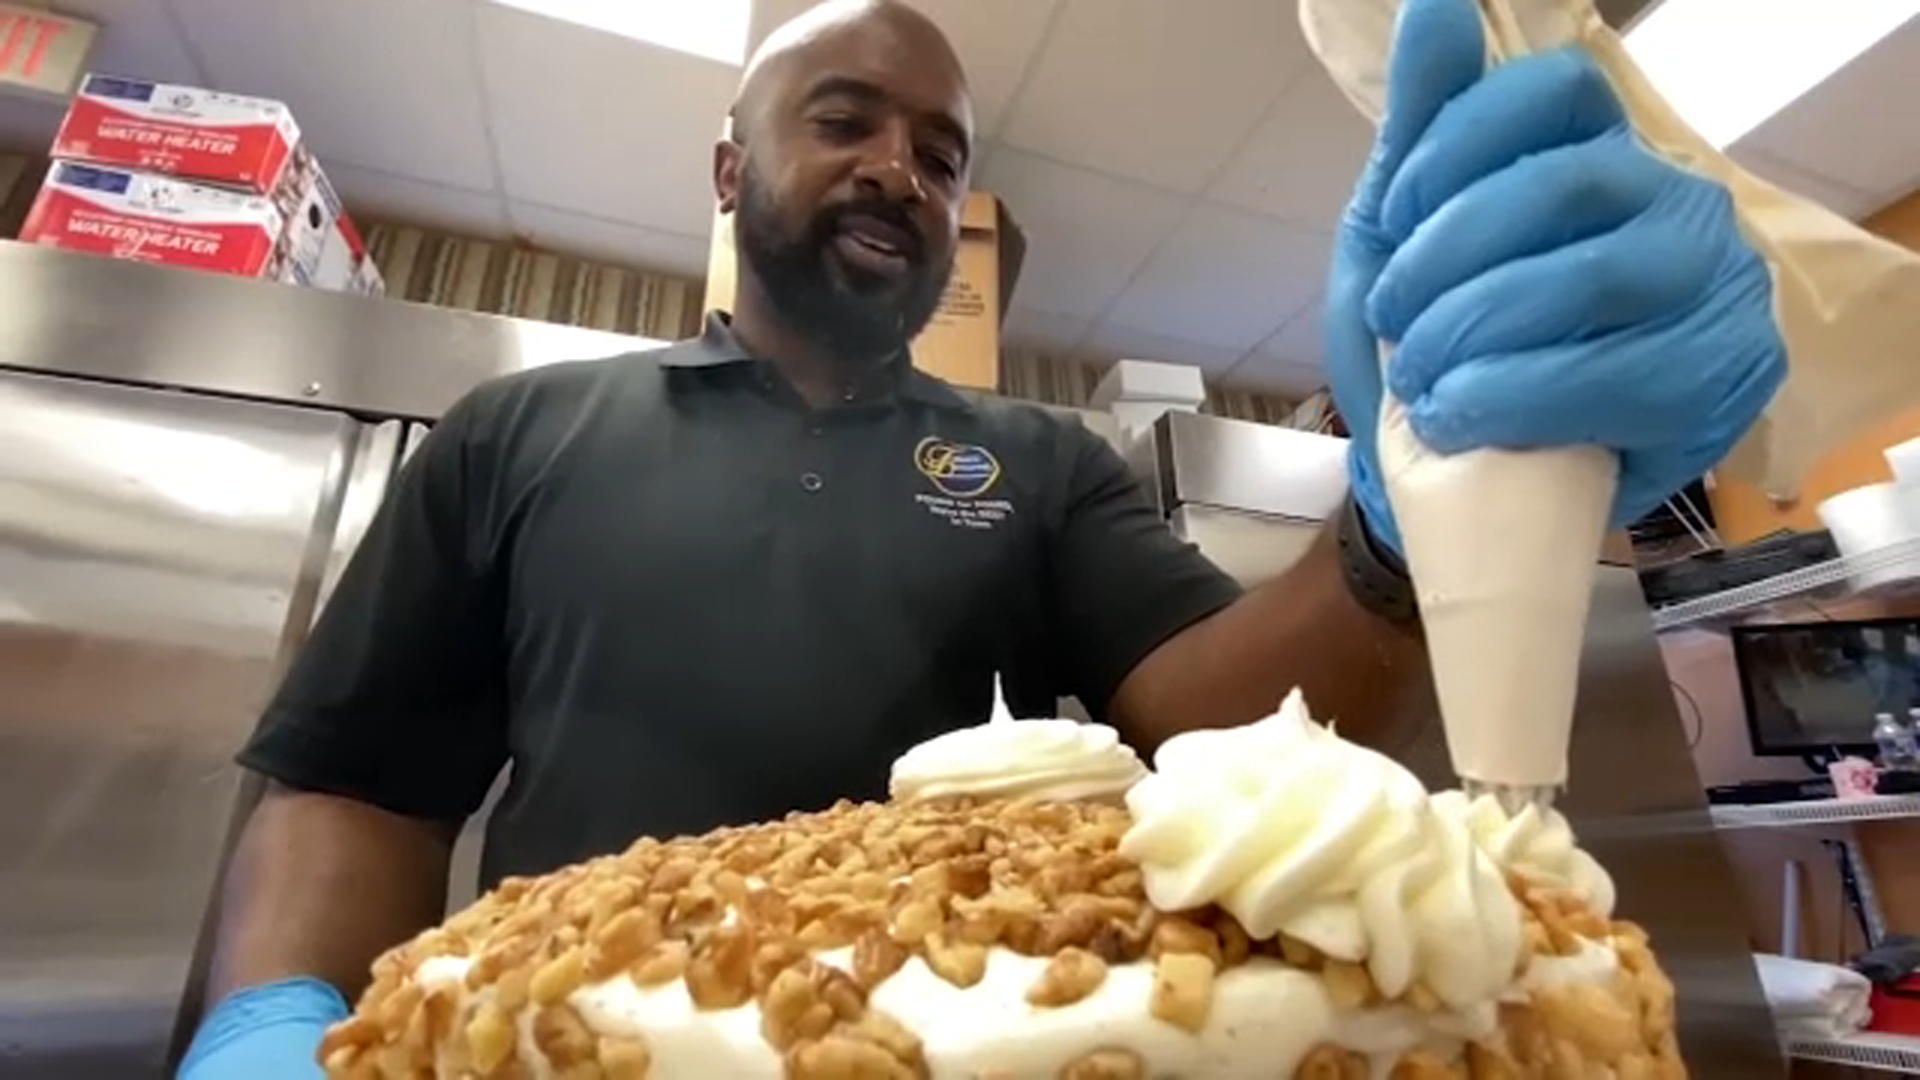 'It's my duty to be beacon of hope': Durham chef turns his second chance into an opportunity for others